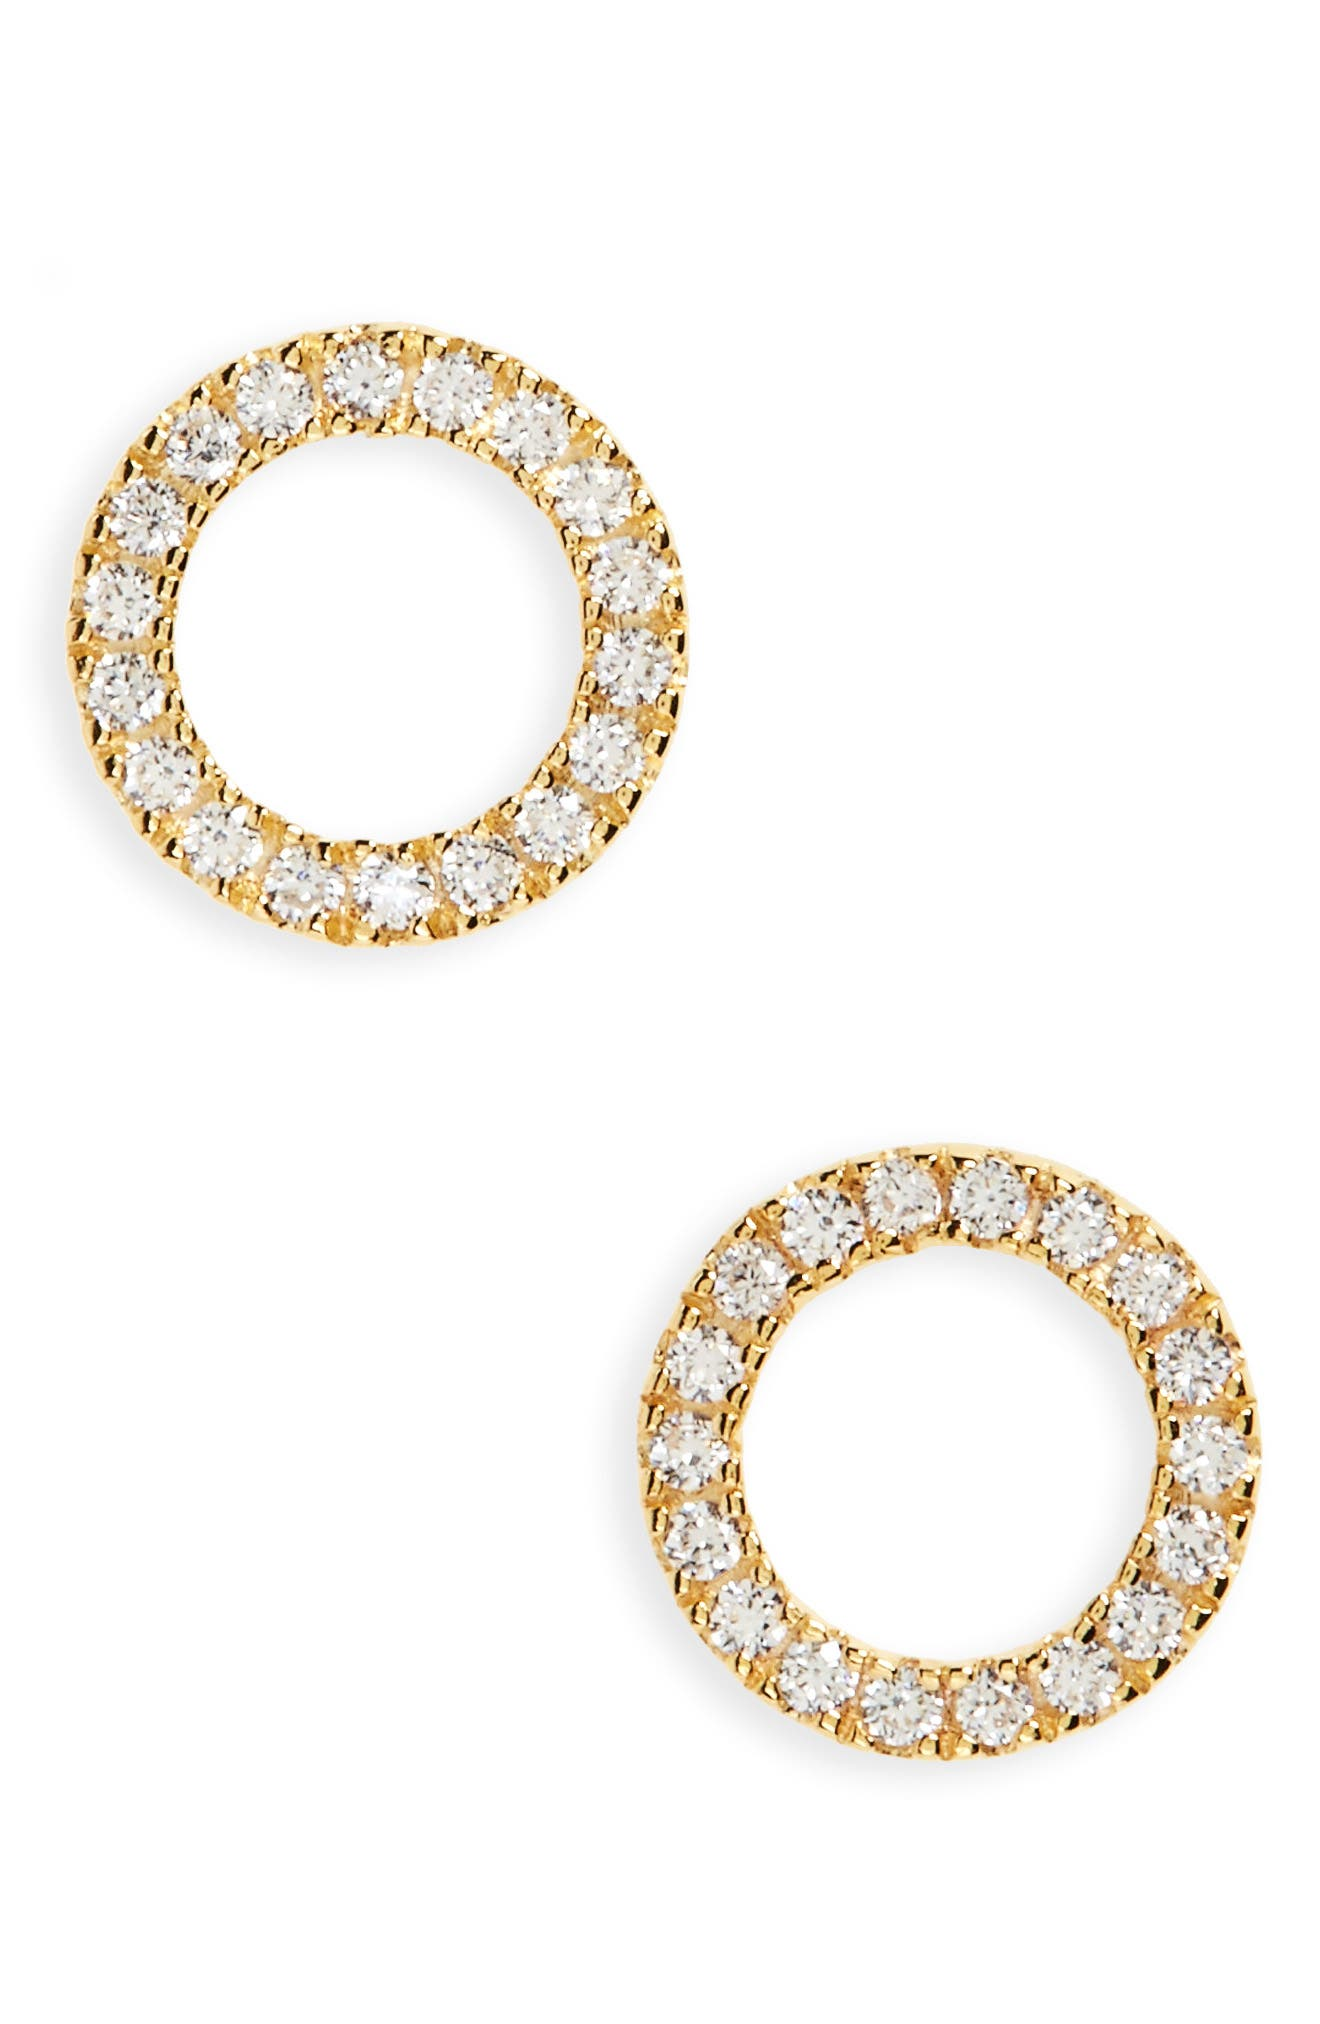 Main Image - Nordstrom Open Circle Stud Earrings